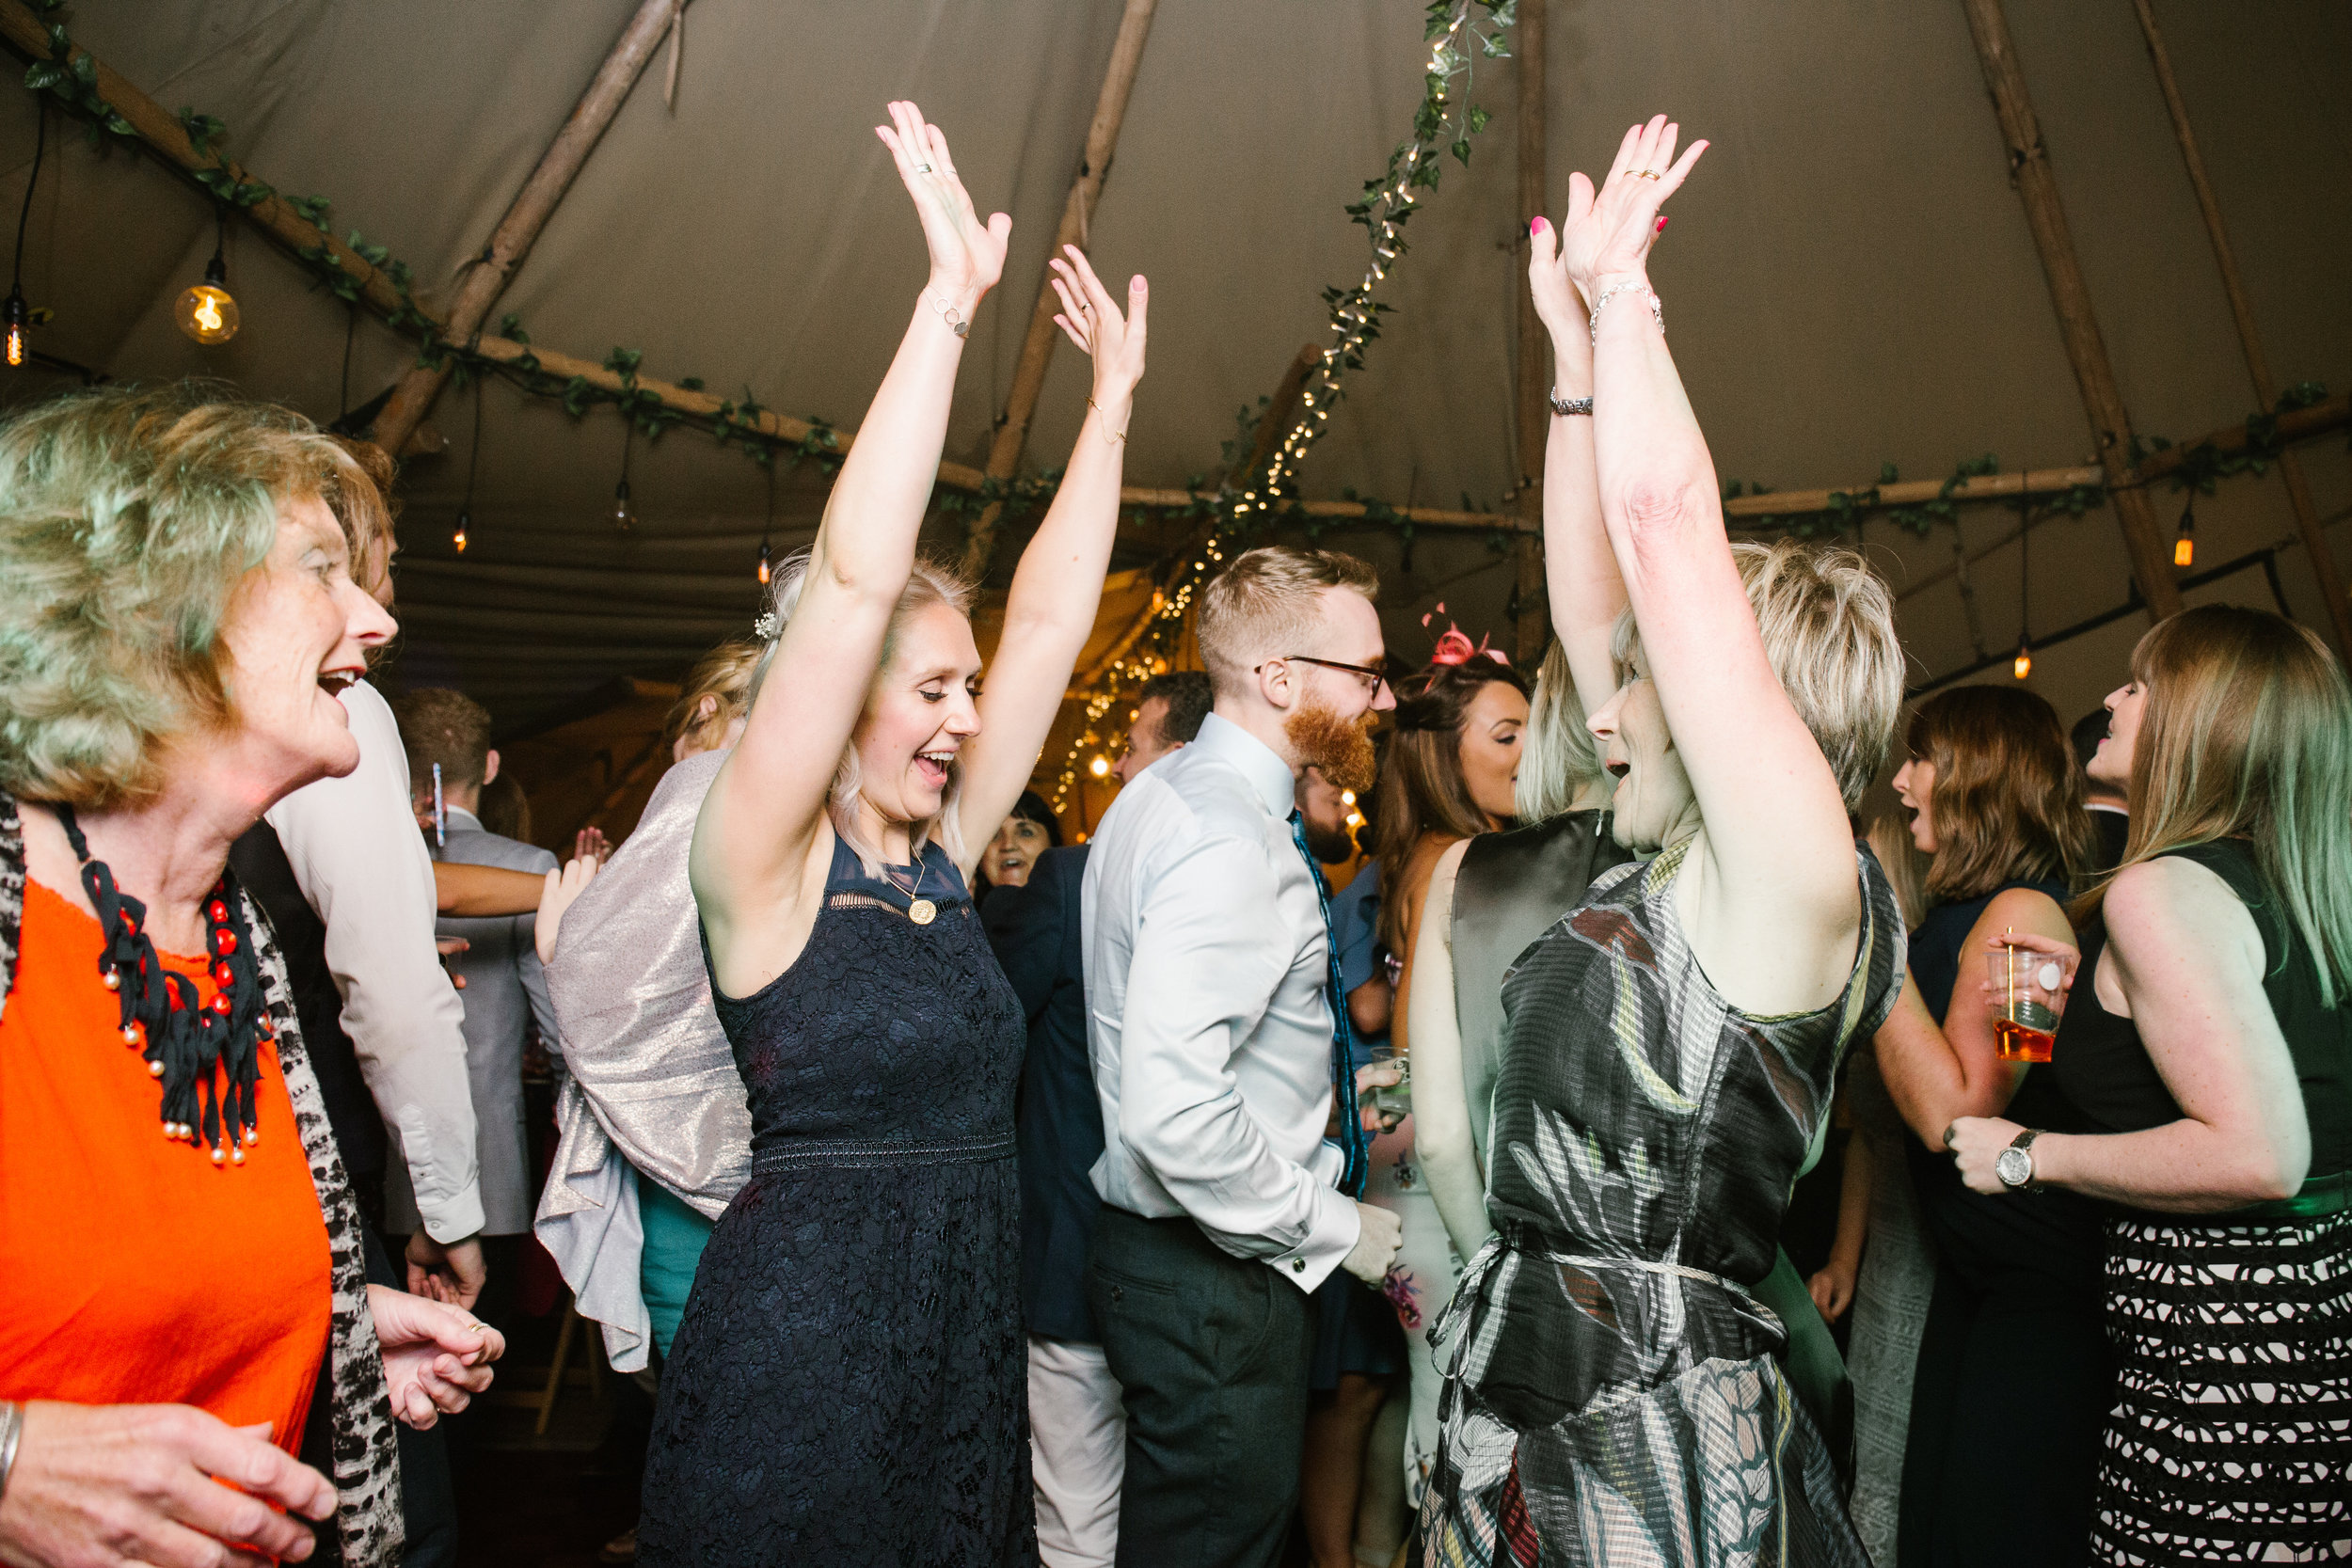 mother and daughter dancing on the dance floor of a wedding with their arms high in the air